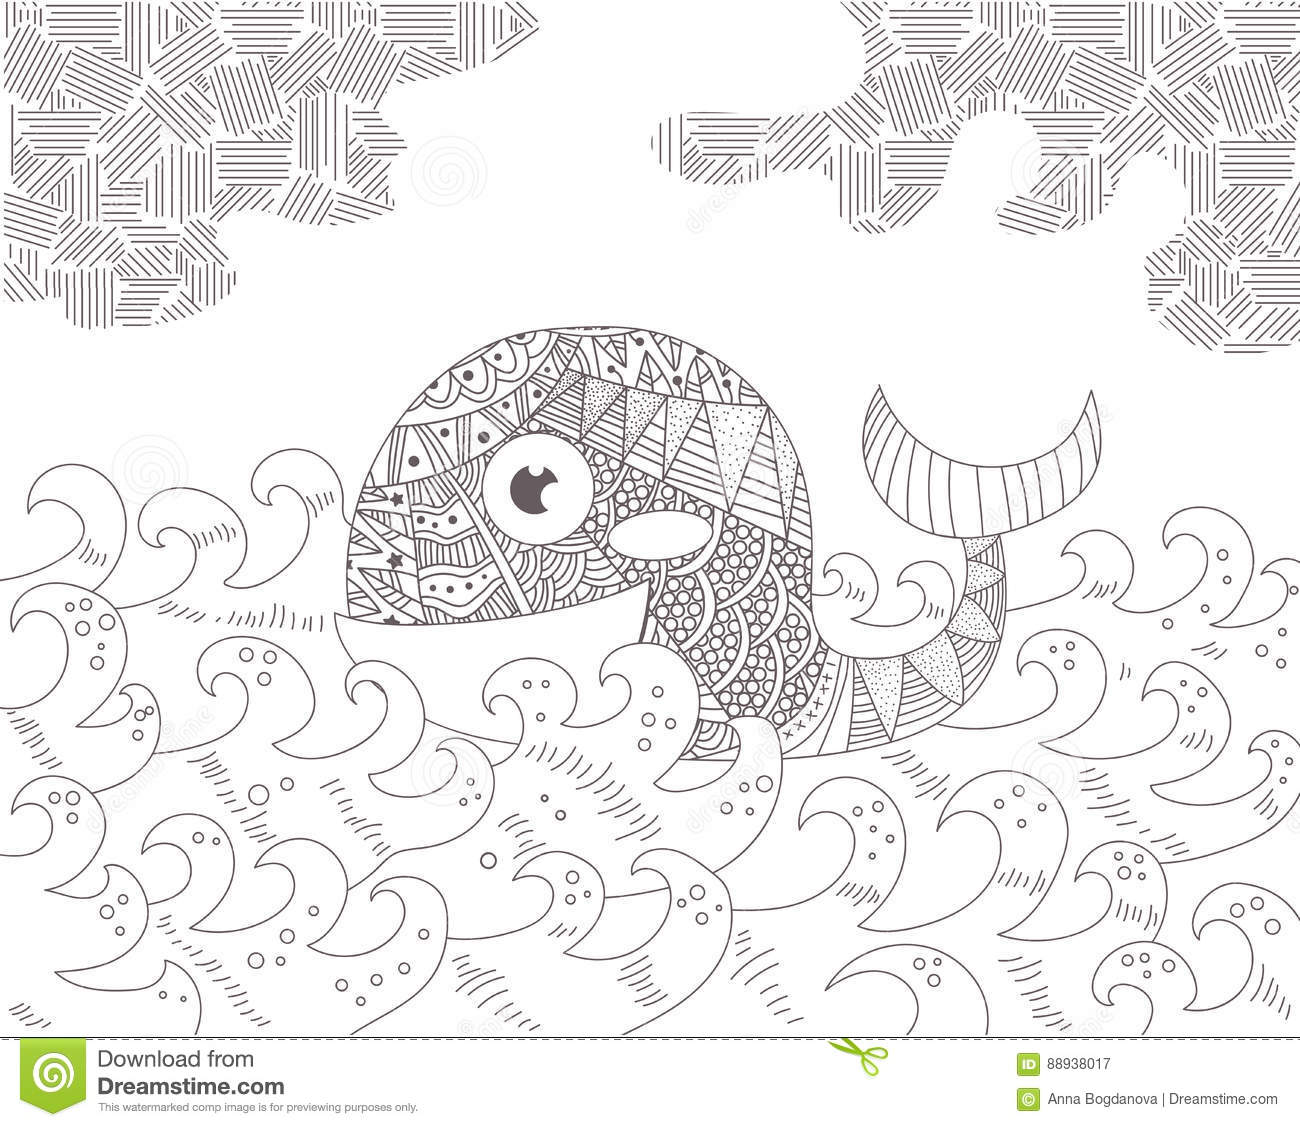 ocean background coloring pages - ornated cartoons illustrations vector stock images